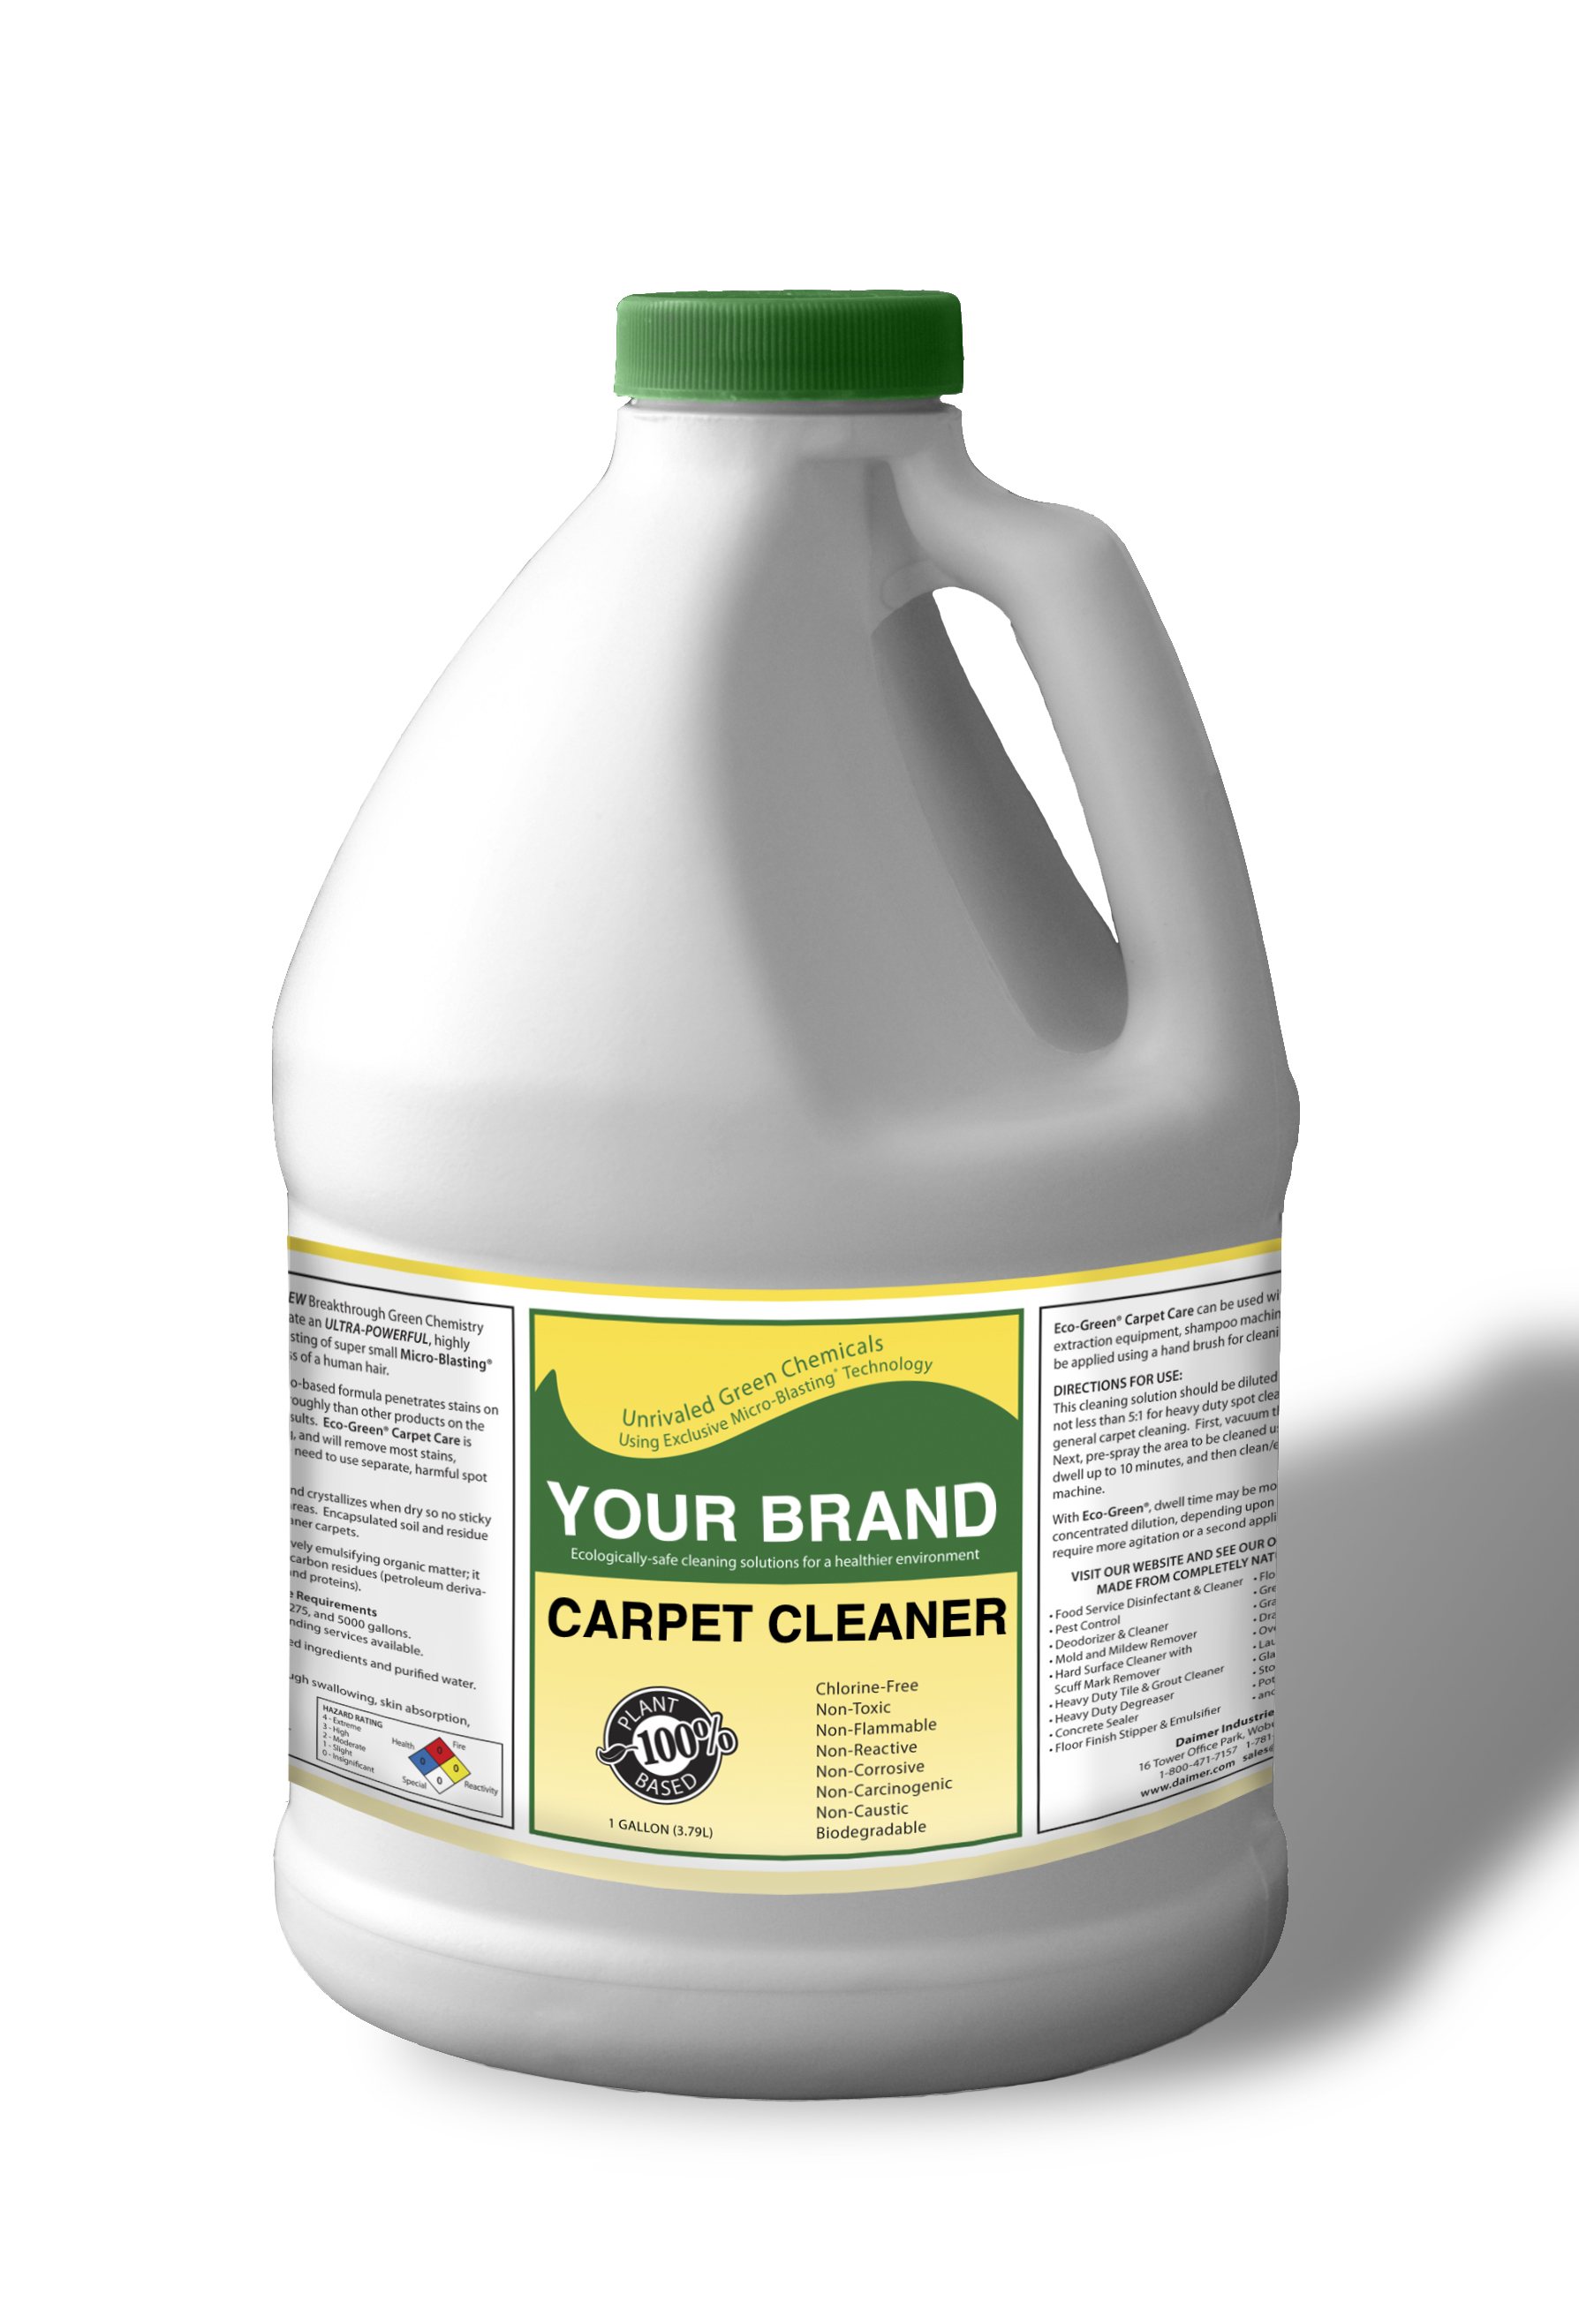 Green Chemicals By Eco Green 174 Available To Chemical